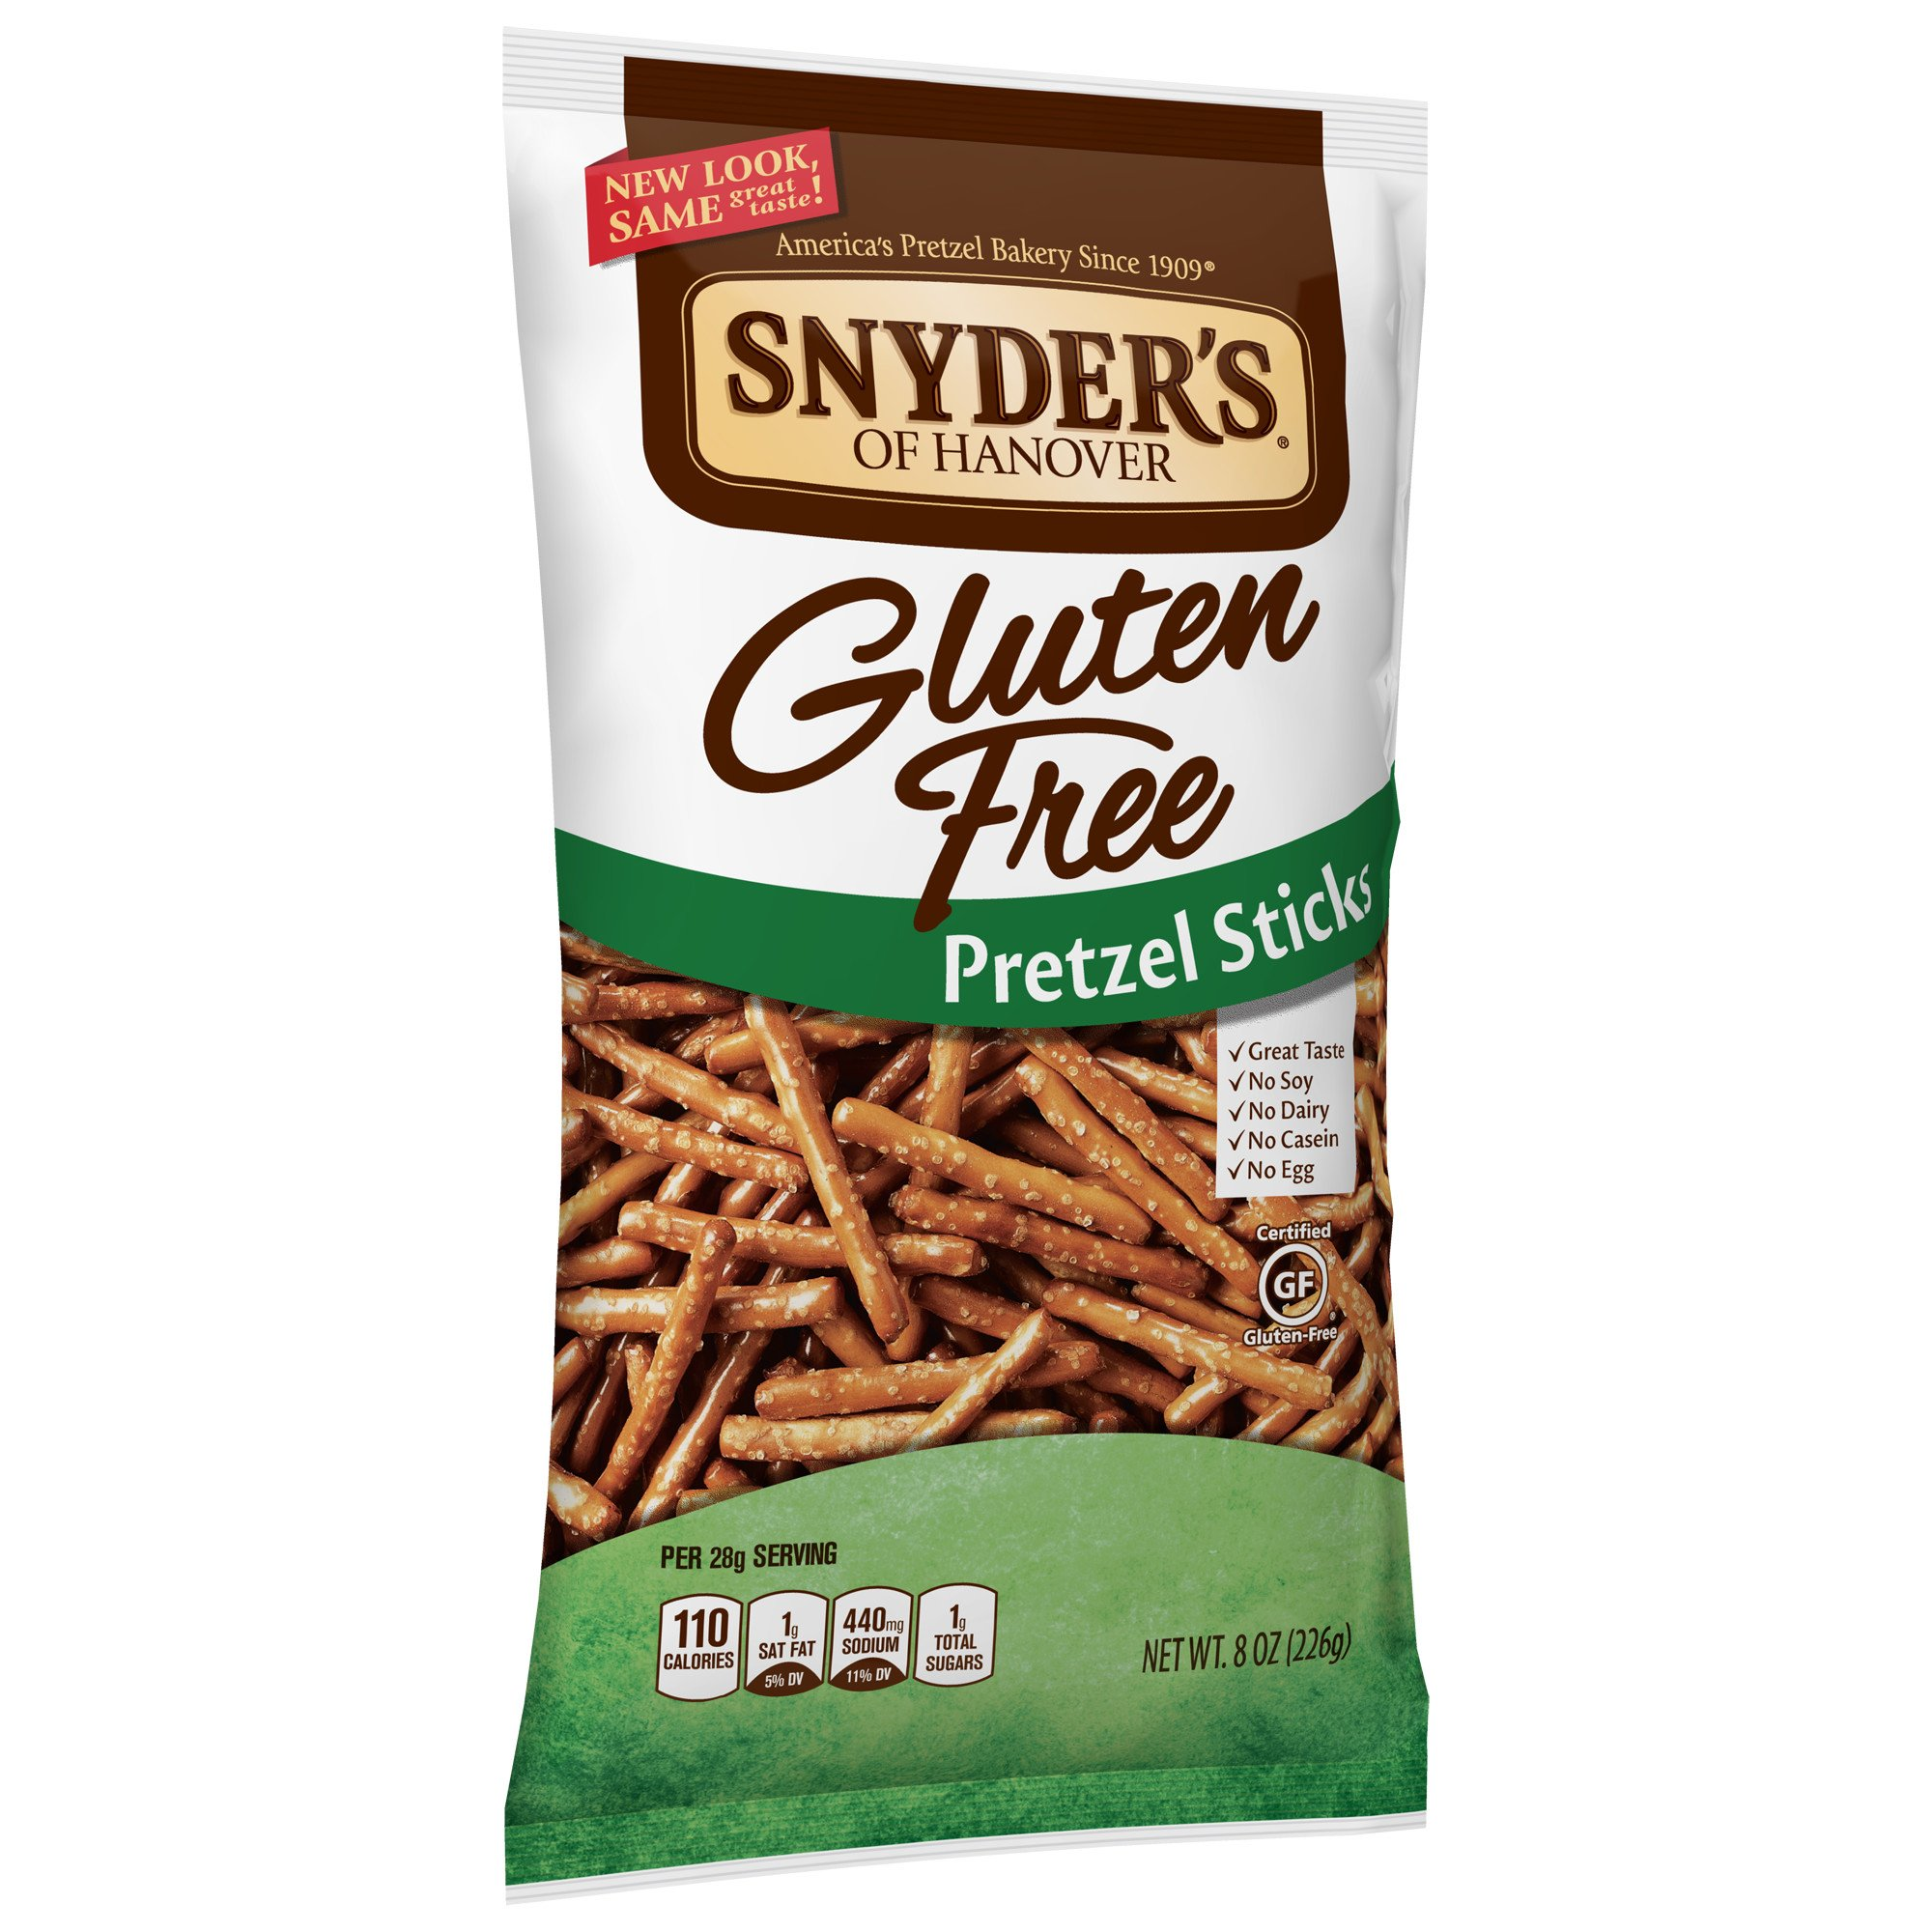 Snyder's of Hanover Gluten Free Pretzel Sticks, 8 Ounce (Pack of 12) by Snyder's of Hanover (Image #5)